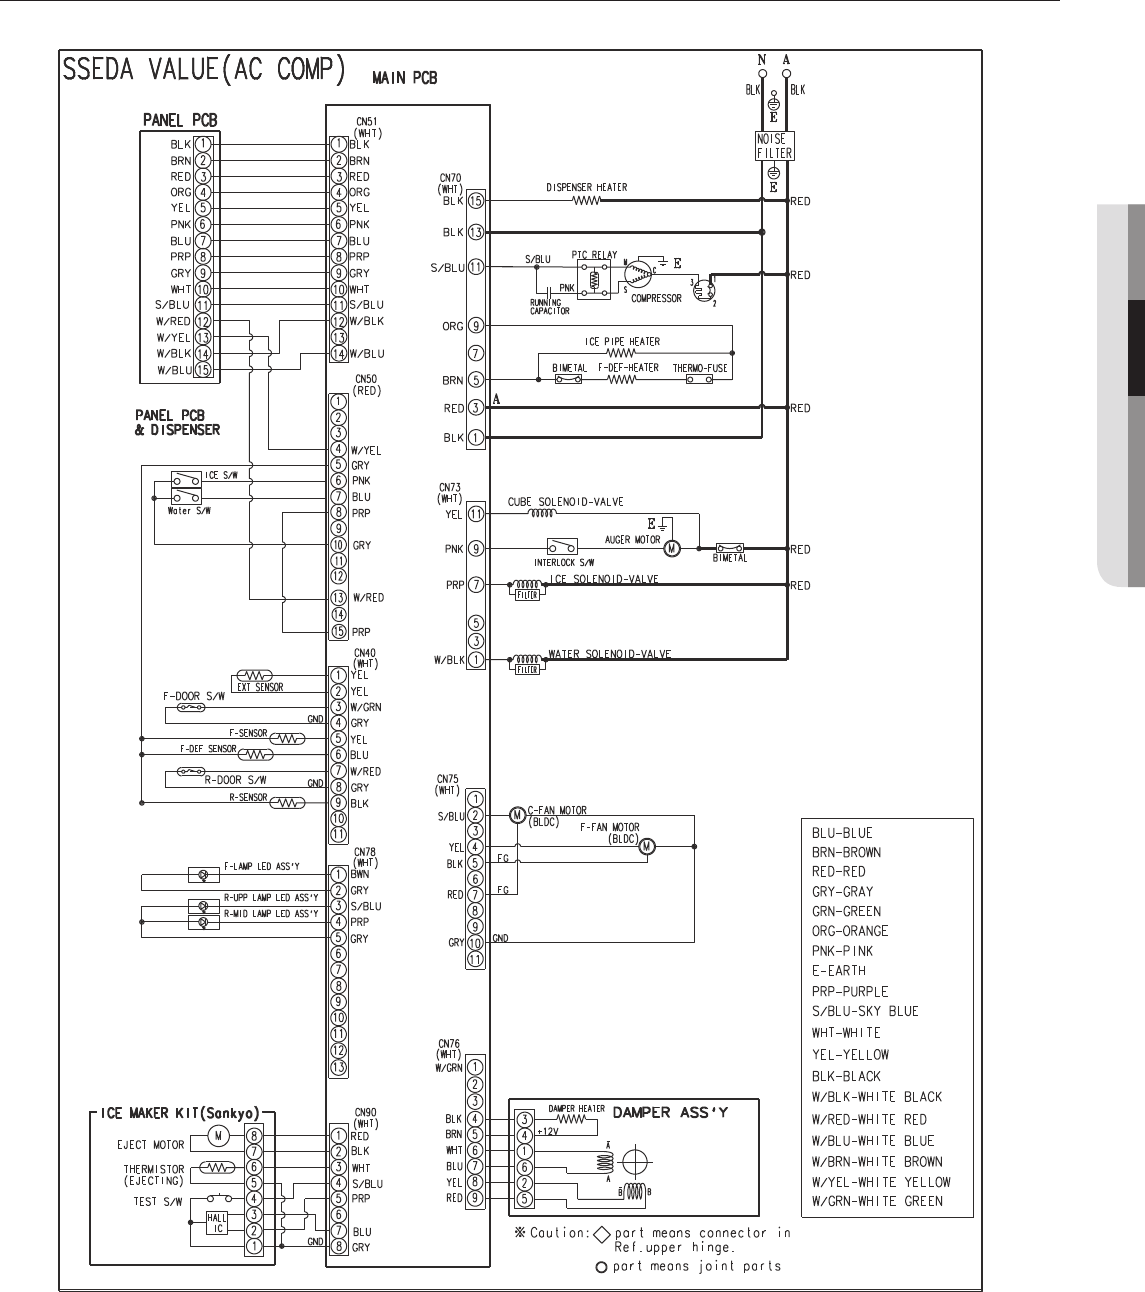 21aa6212 5c03 4539 ac02 99a0885d5c5e bg1f page 31 of paul's tv samsung refrigerator rs261mdwp user manual hobart waste disposal wiring diagram at nearapp.co